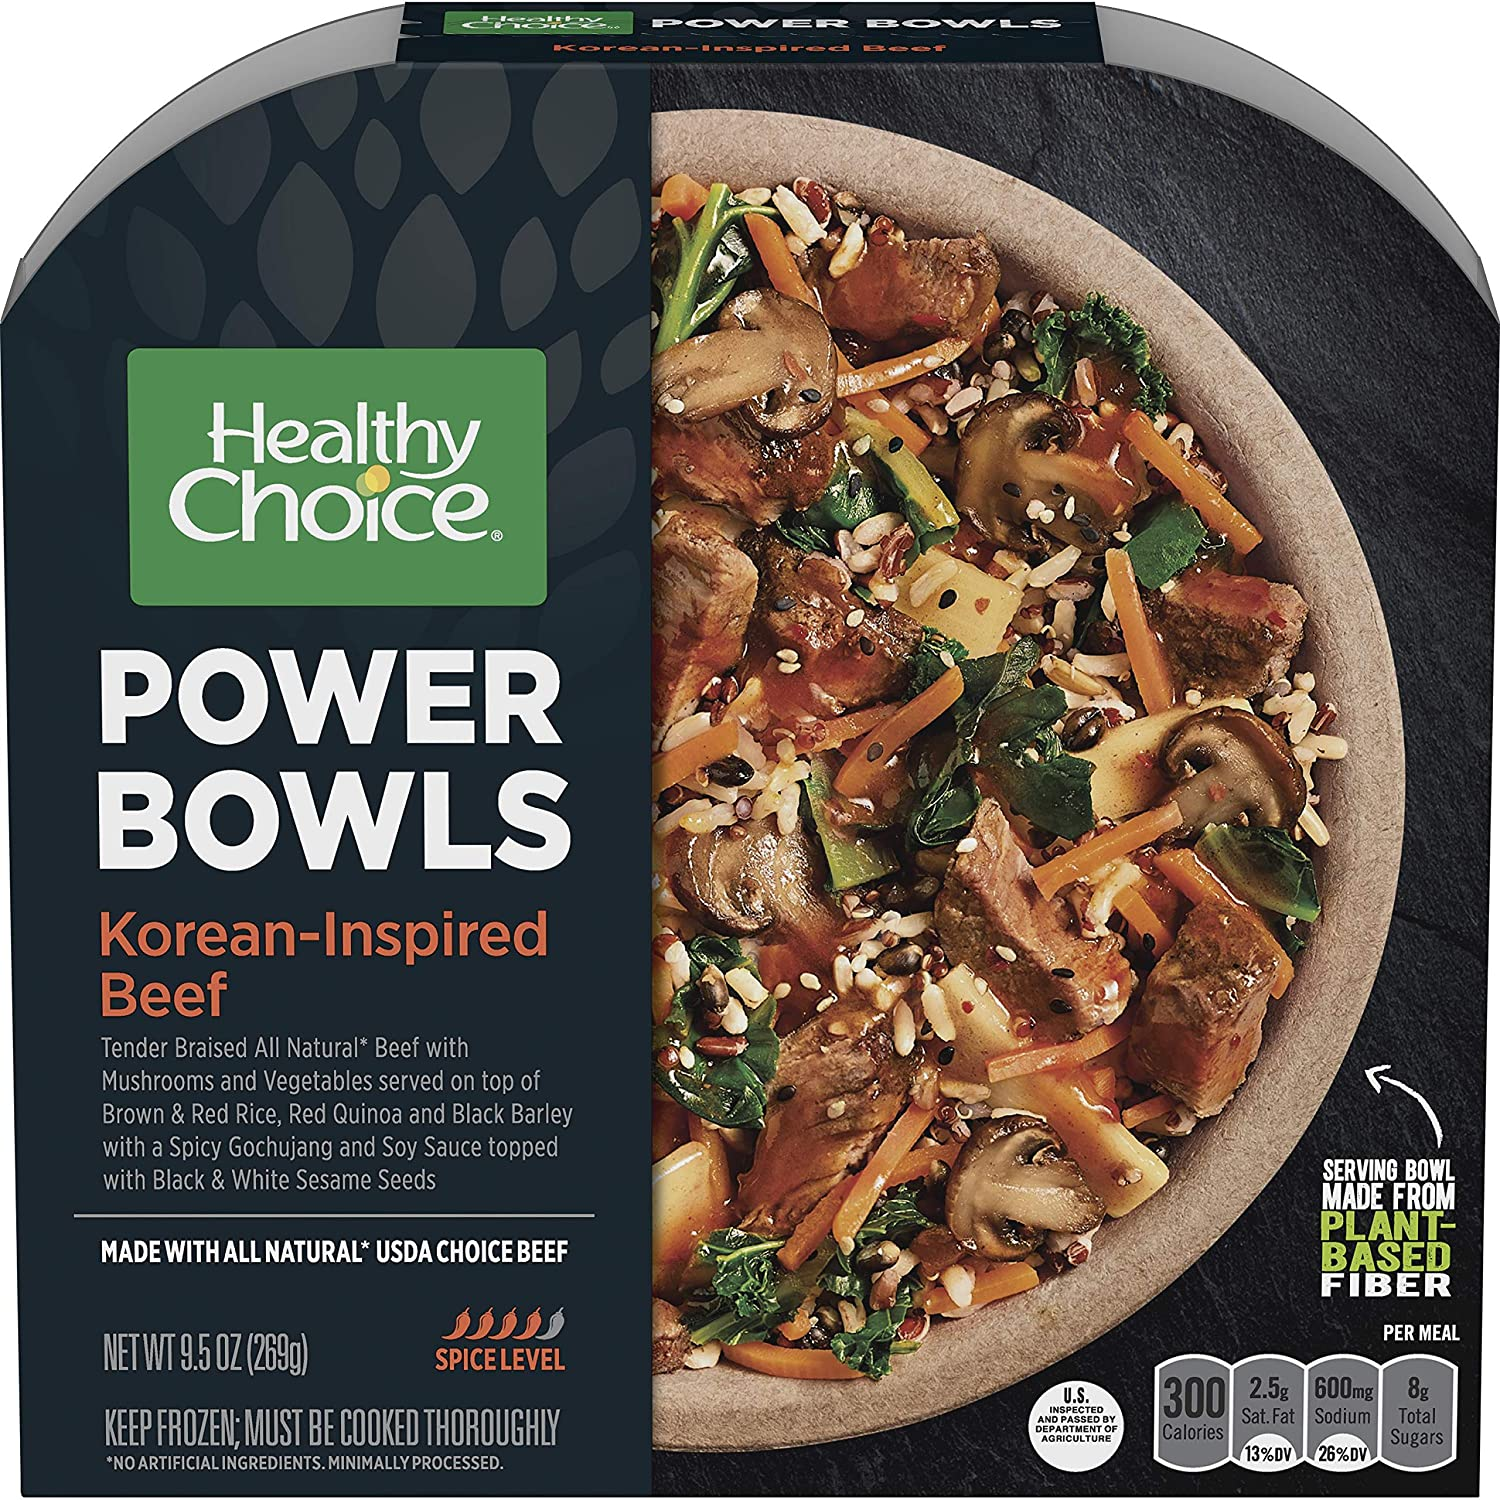 Healthy Choice Power Bowls Frozen Dinner, Korean-Inspired Beef Bowl, Packed with Protein, 9.5 Ounce